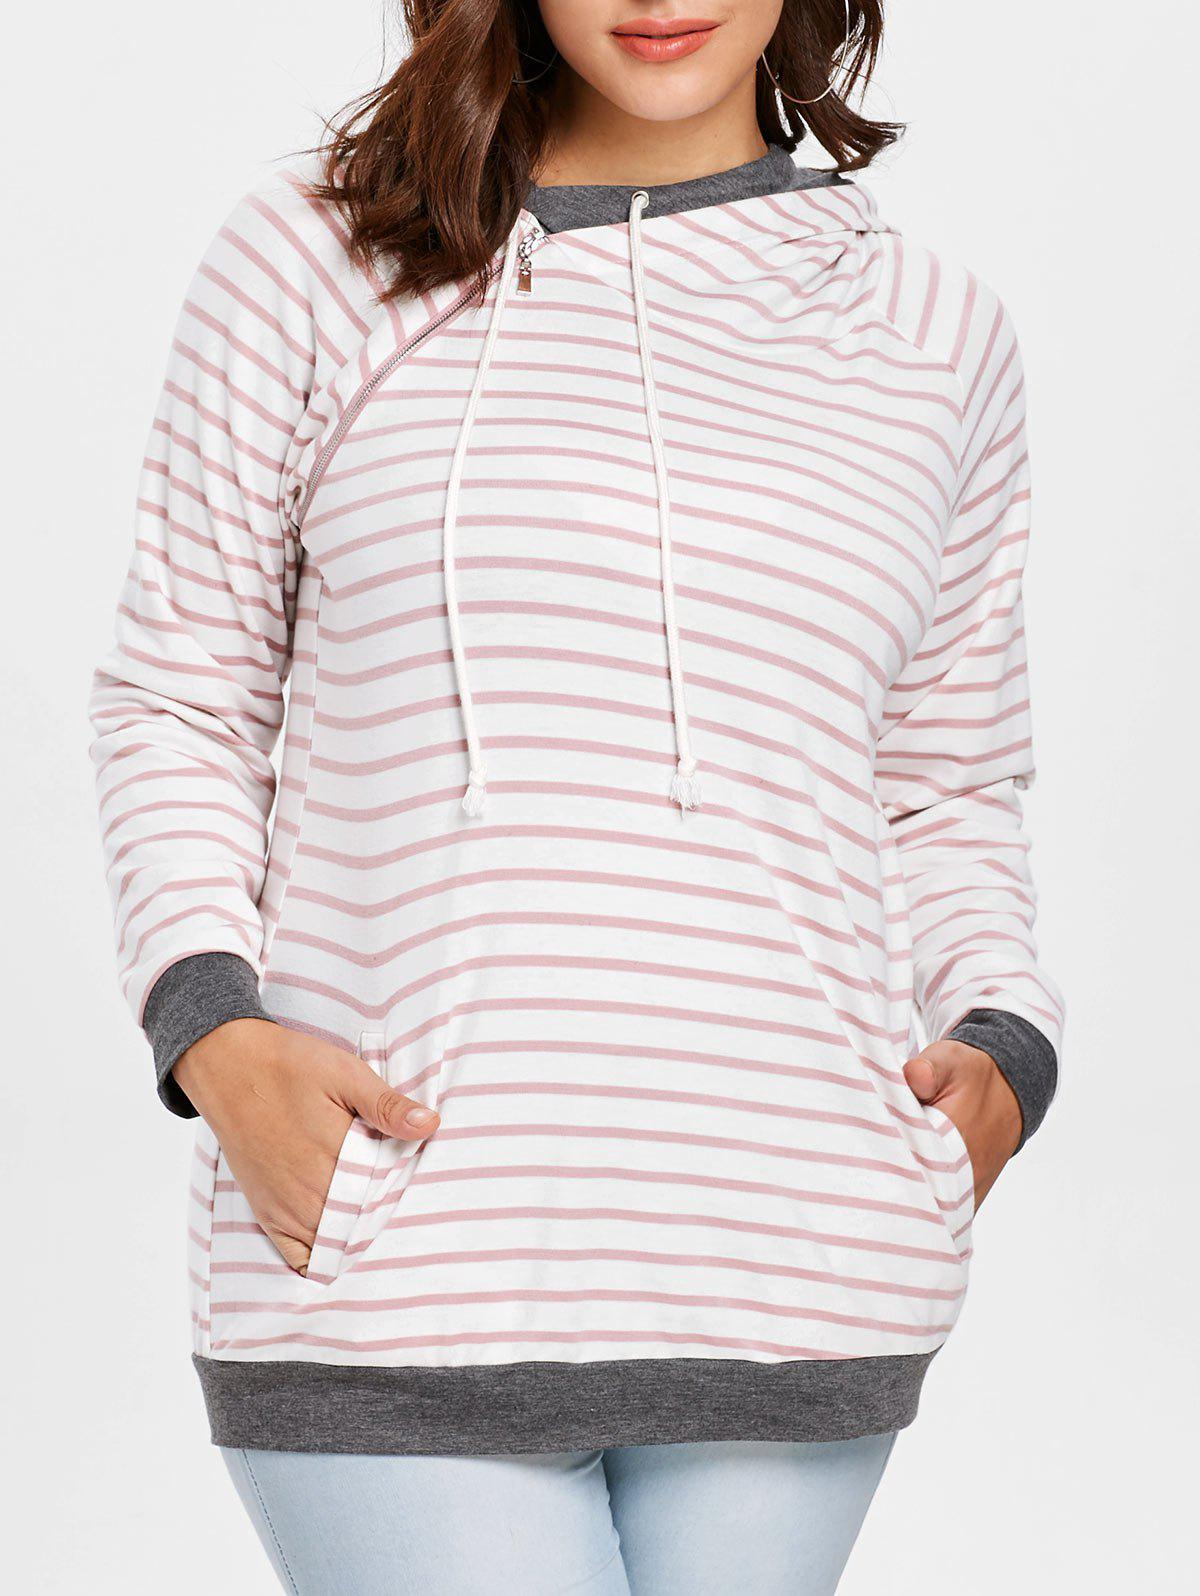 Plus Size Zip Raglan Sleeves Stripe Sweatshirt - PINK L